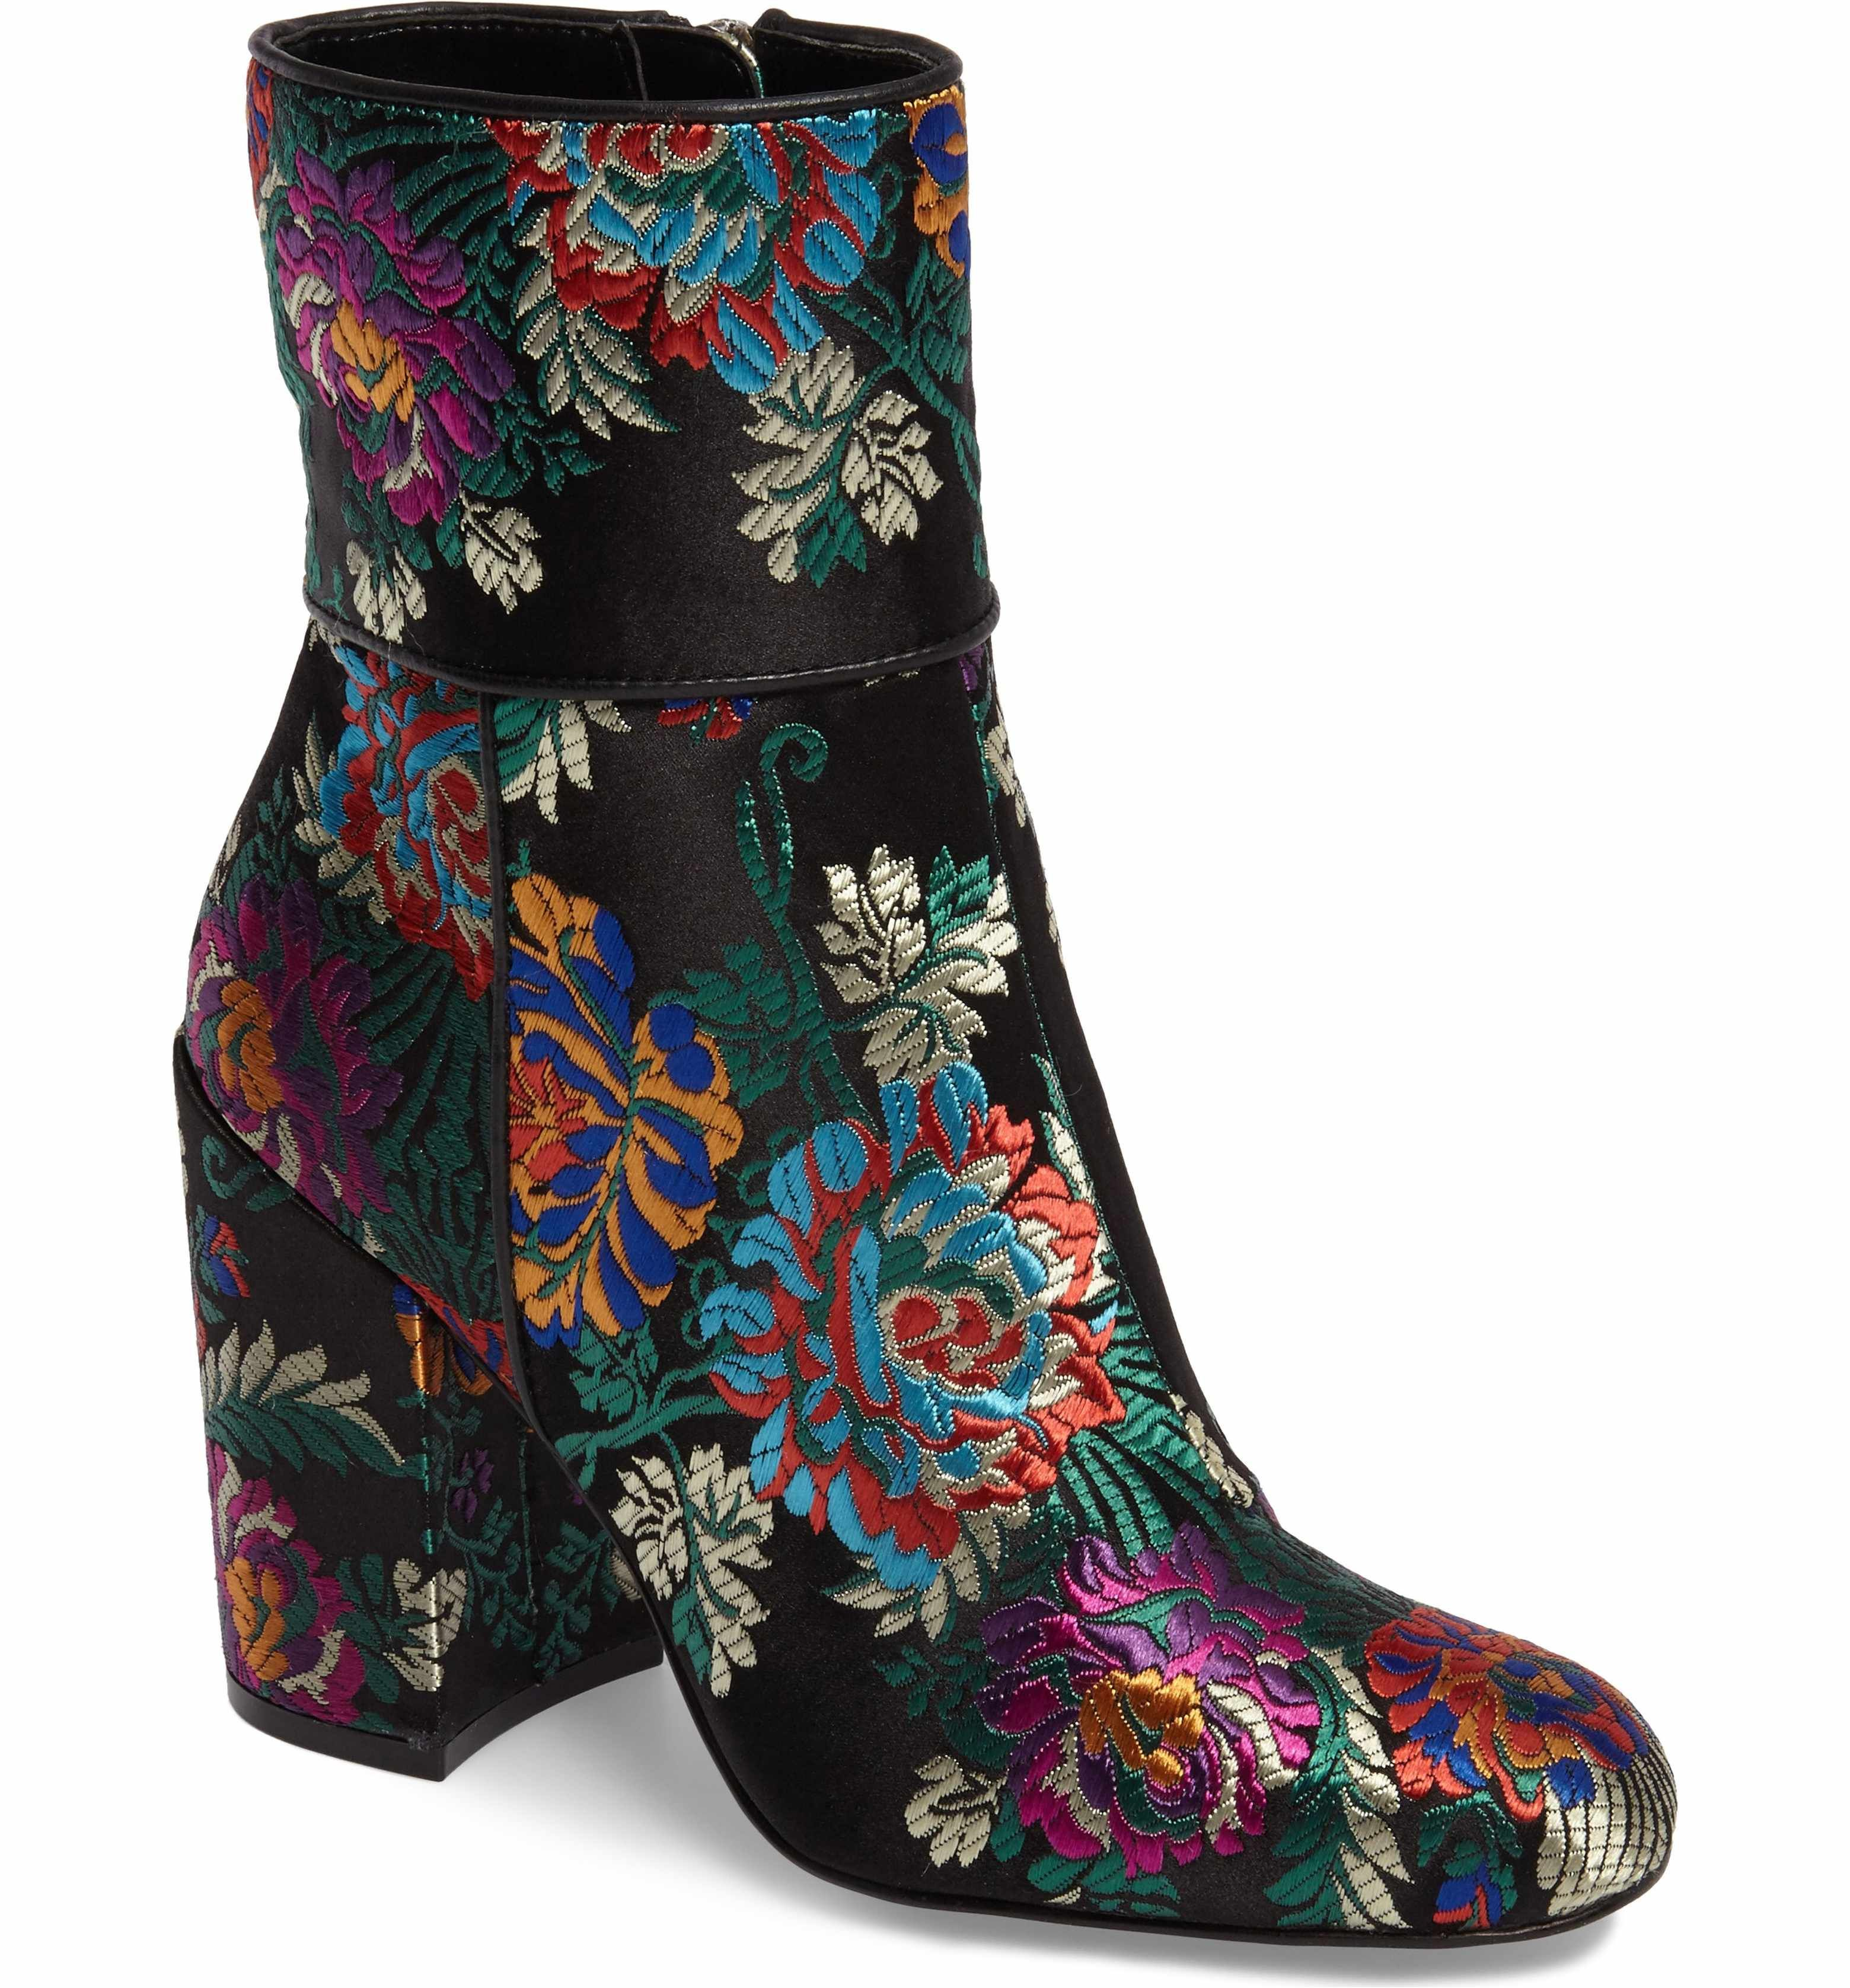 62c0864b76e Pin by Kayla on love shoes in 2019 | Shoes, Boots, Steve madden boots